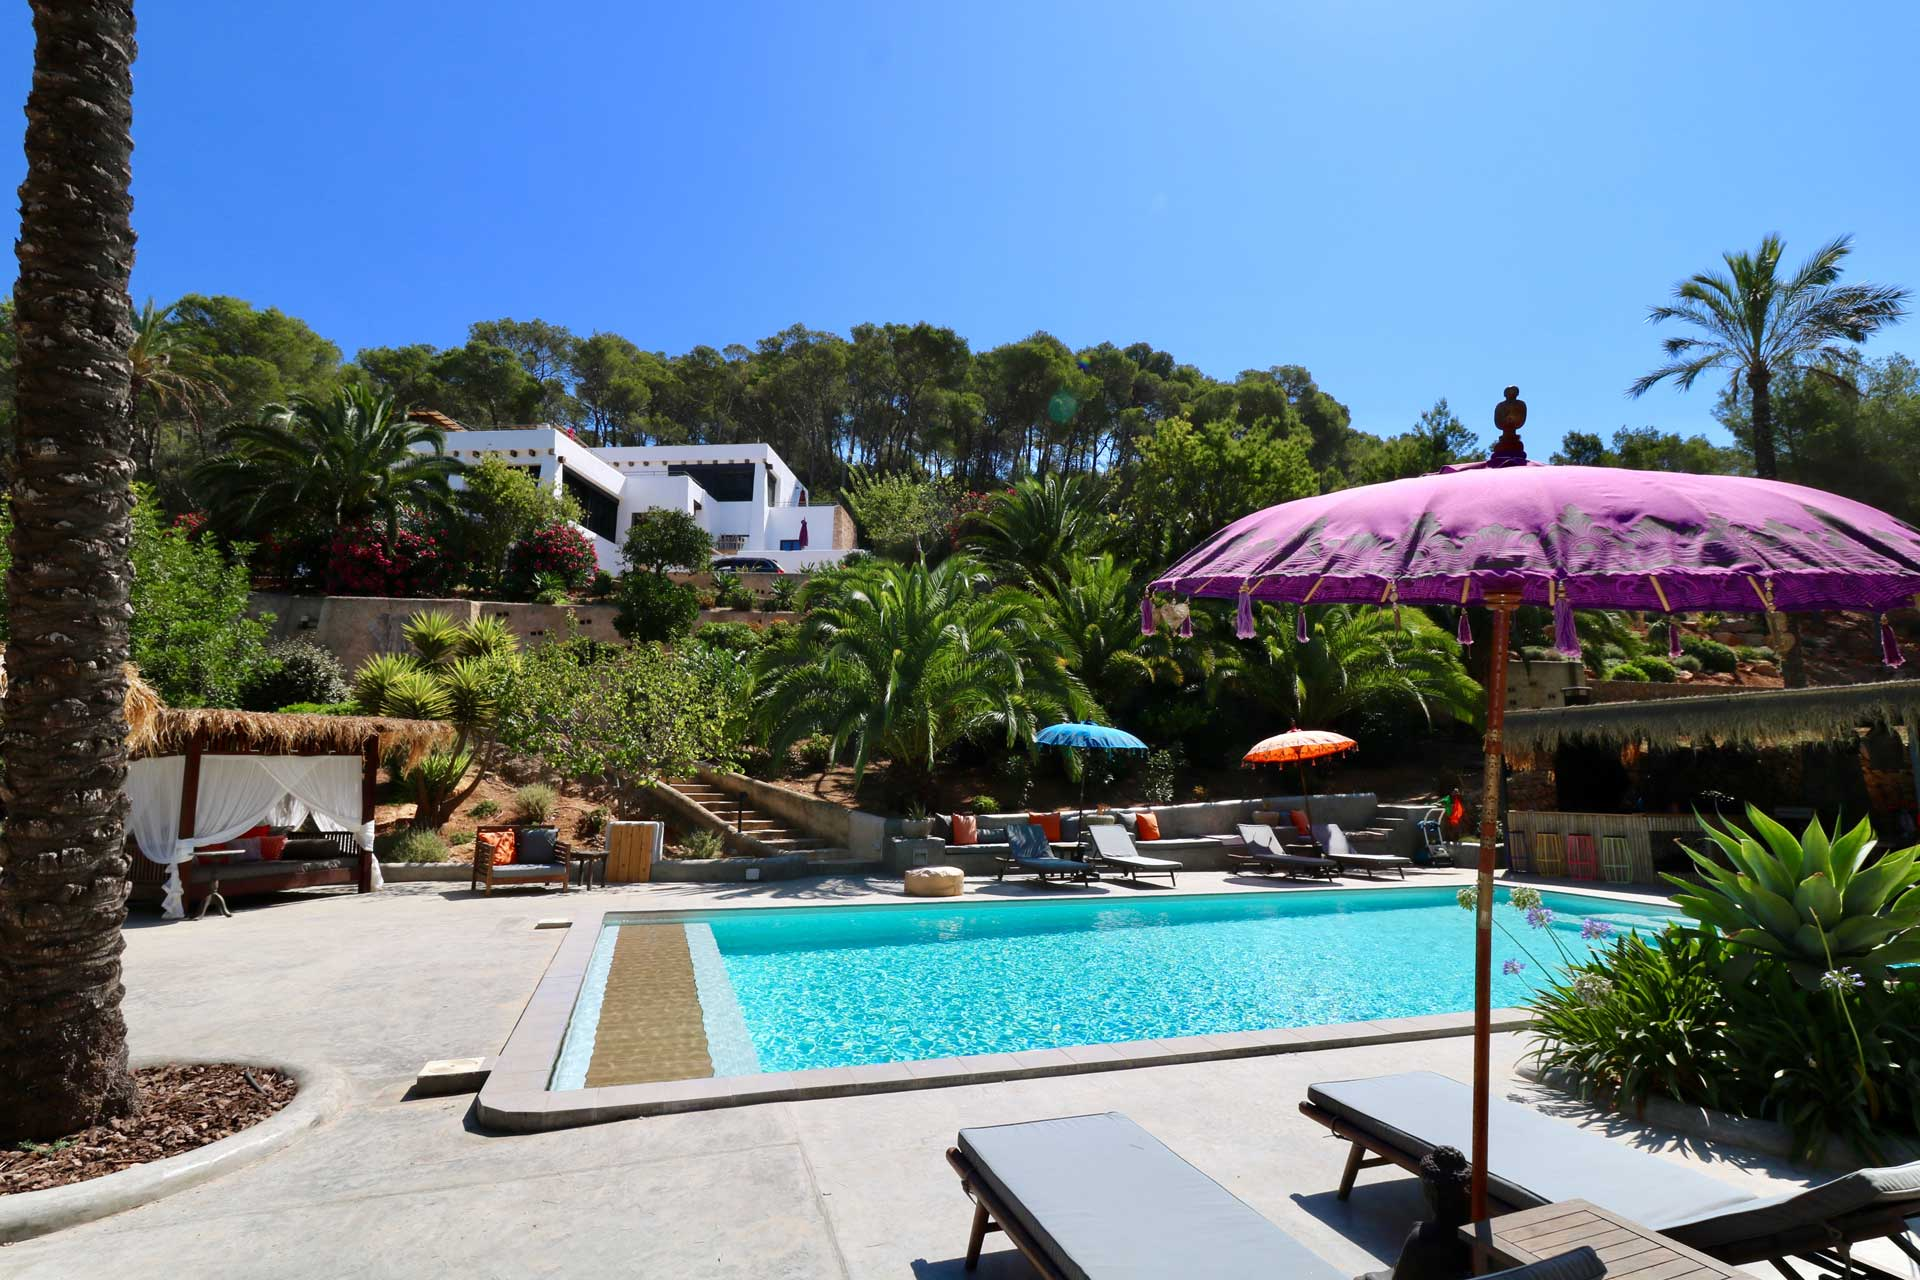 Villa Can Gecko AV Ibiza - Swimming pool area